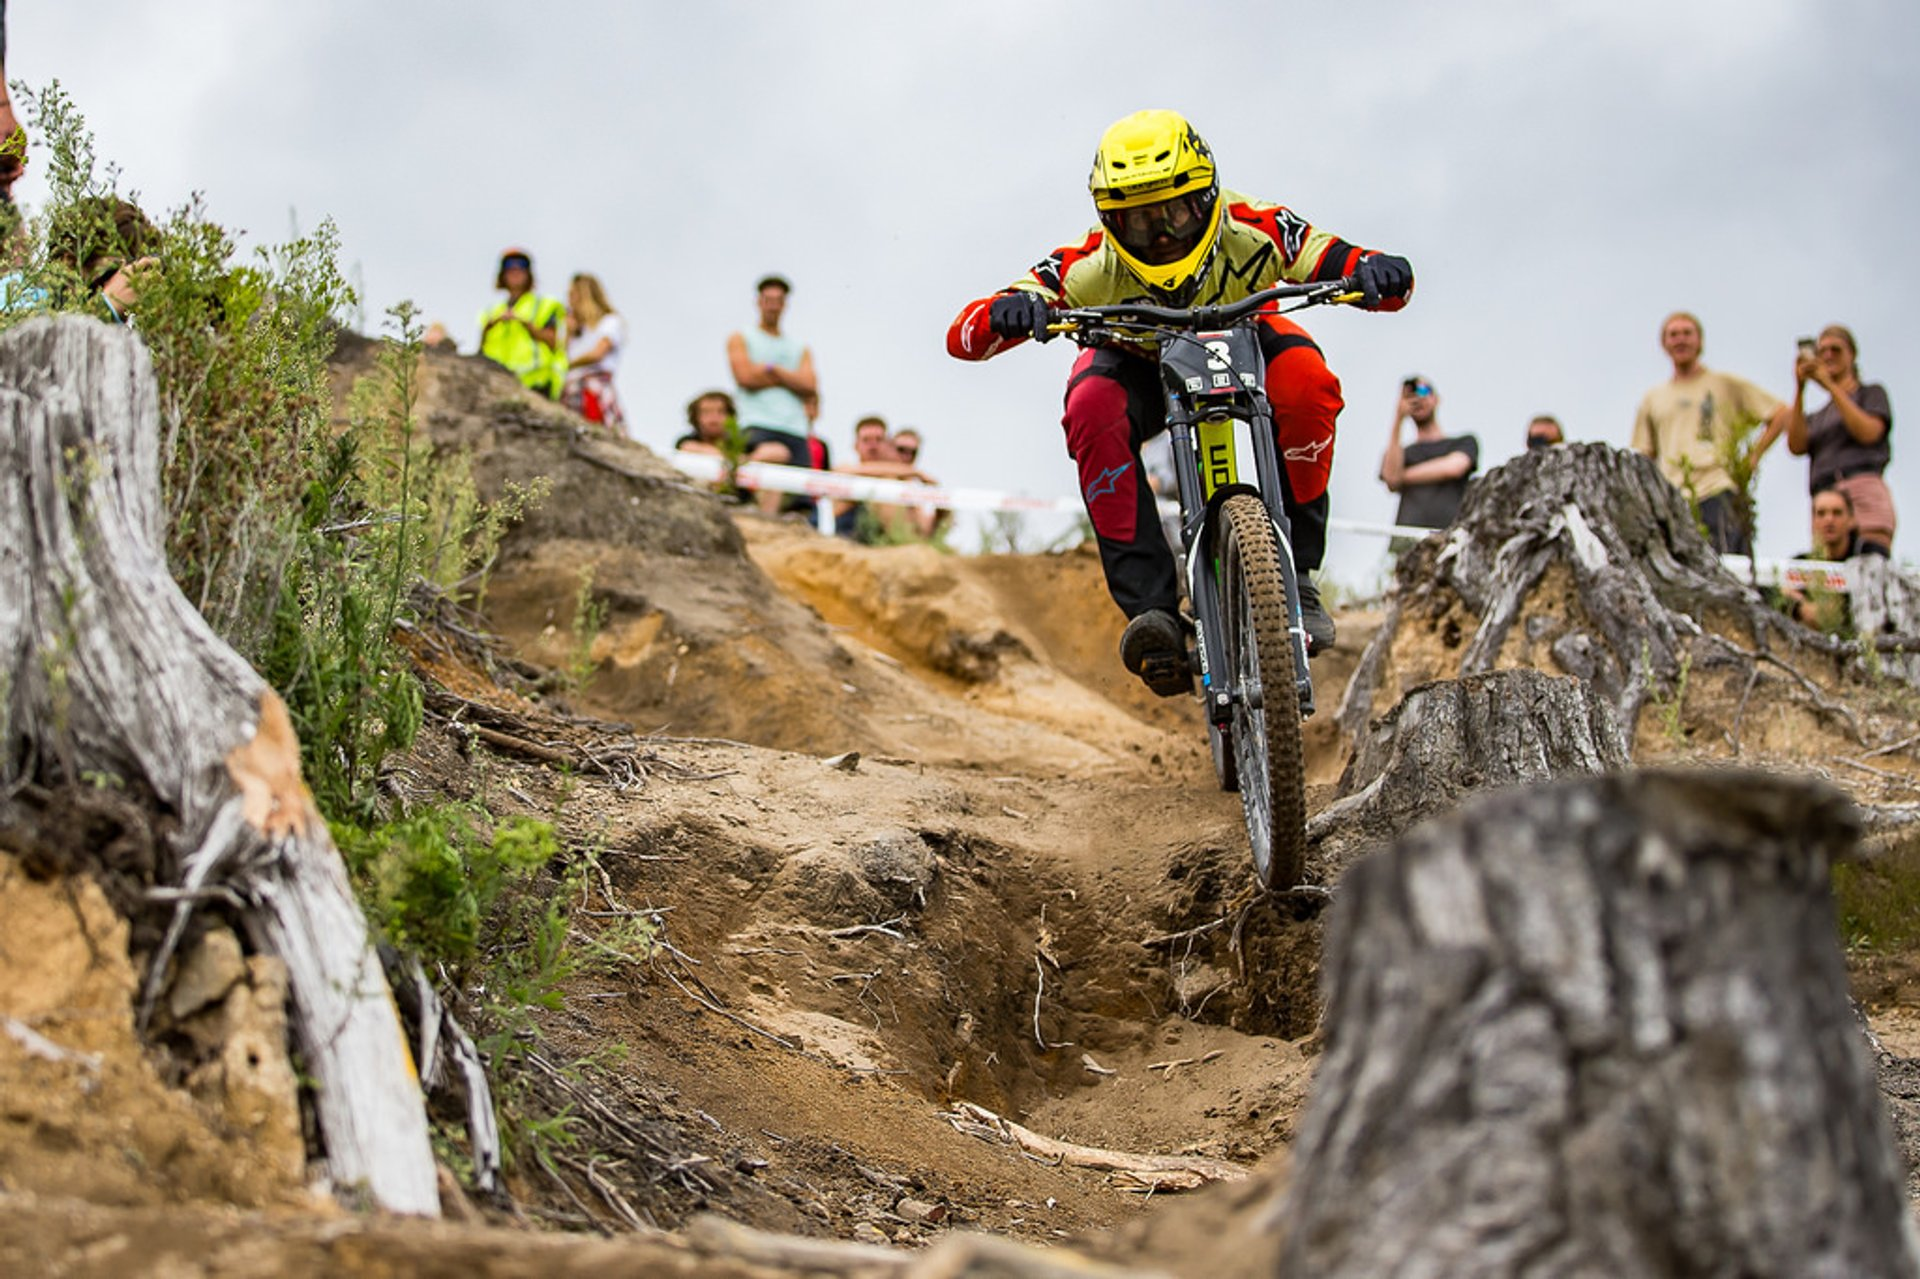 Action from the Redwoods Downhill at Crankworx Rotorua 2020